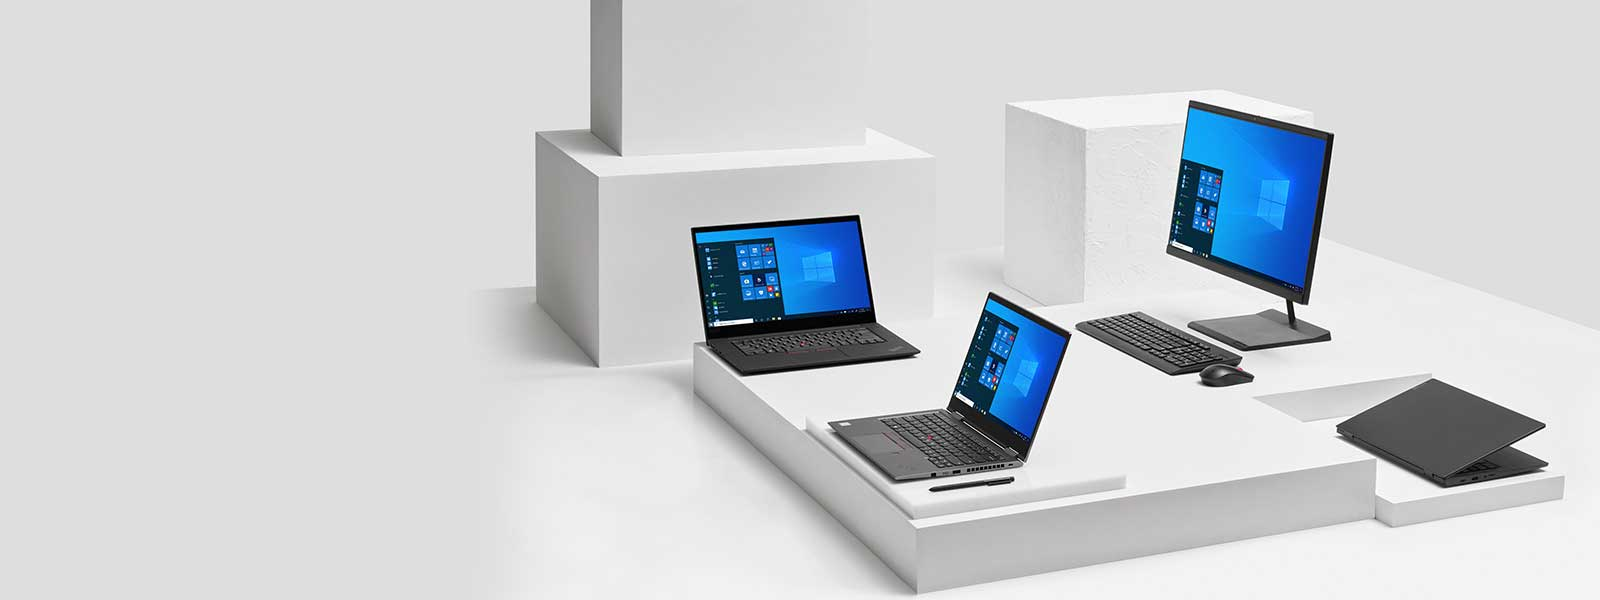 How To Buy Upgrade Windows 10 For Business Microsoft